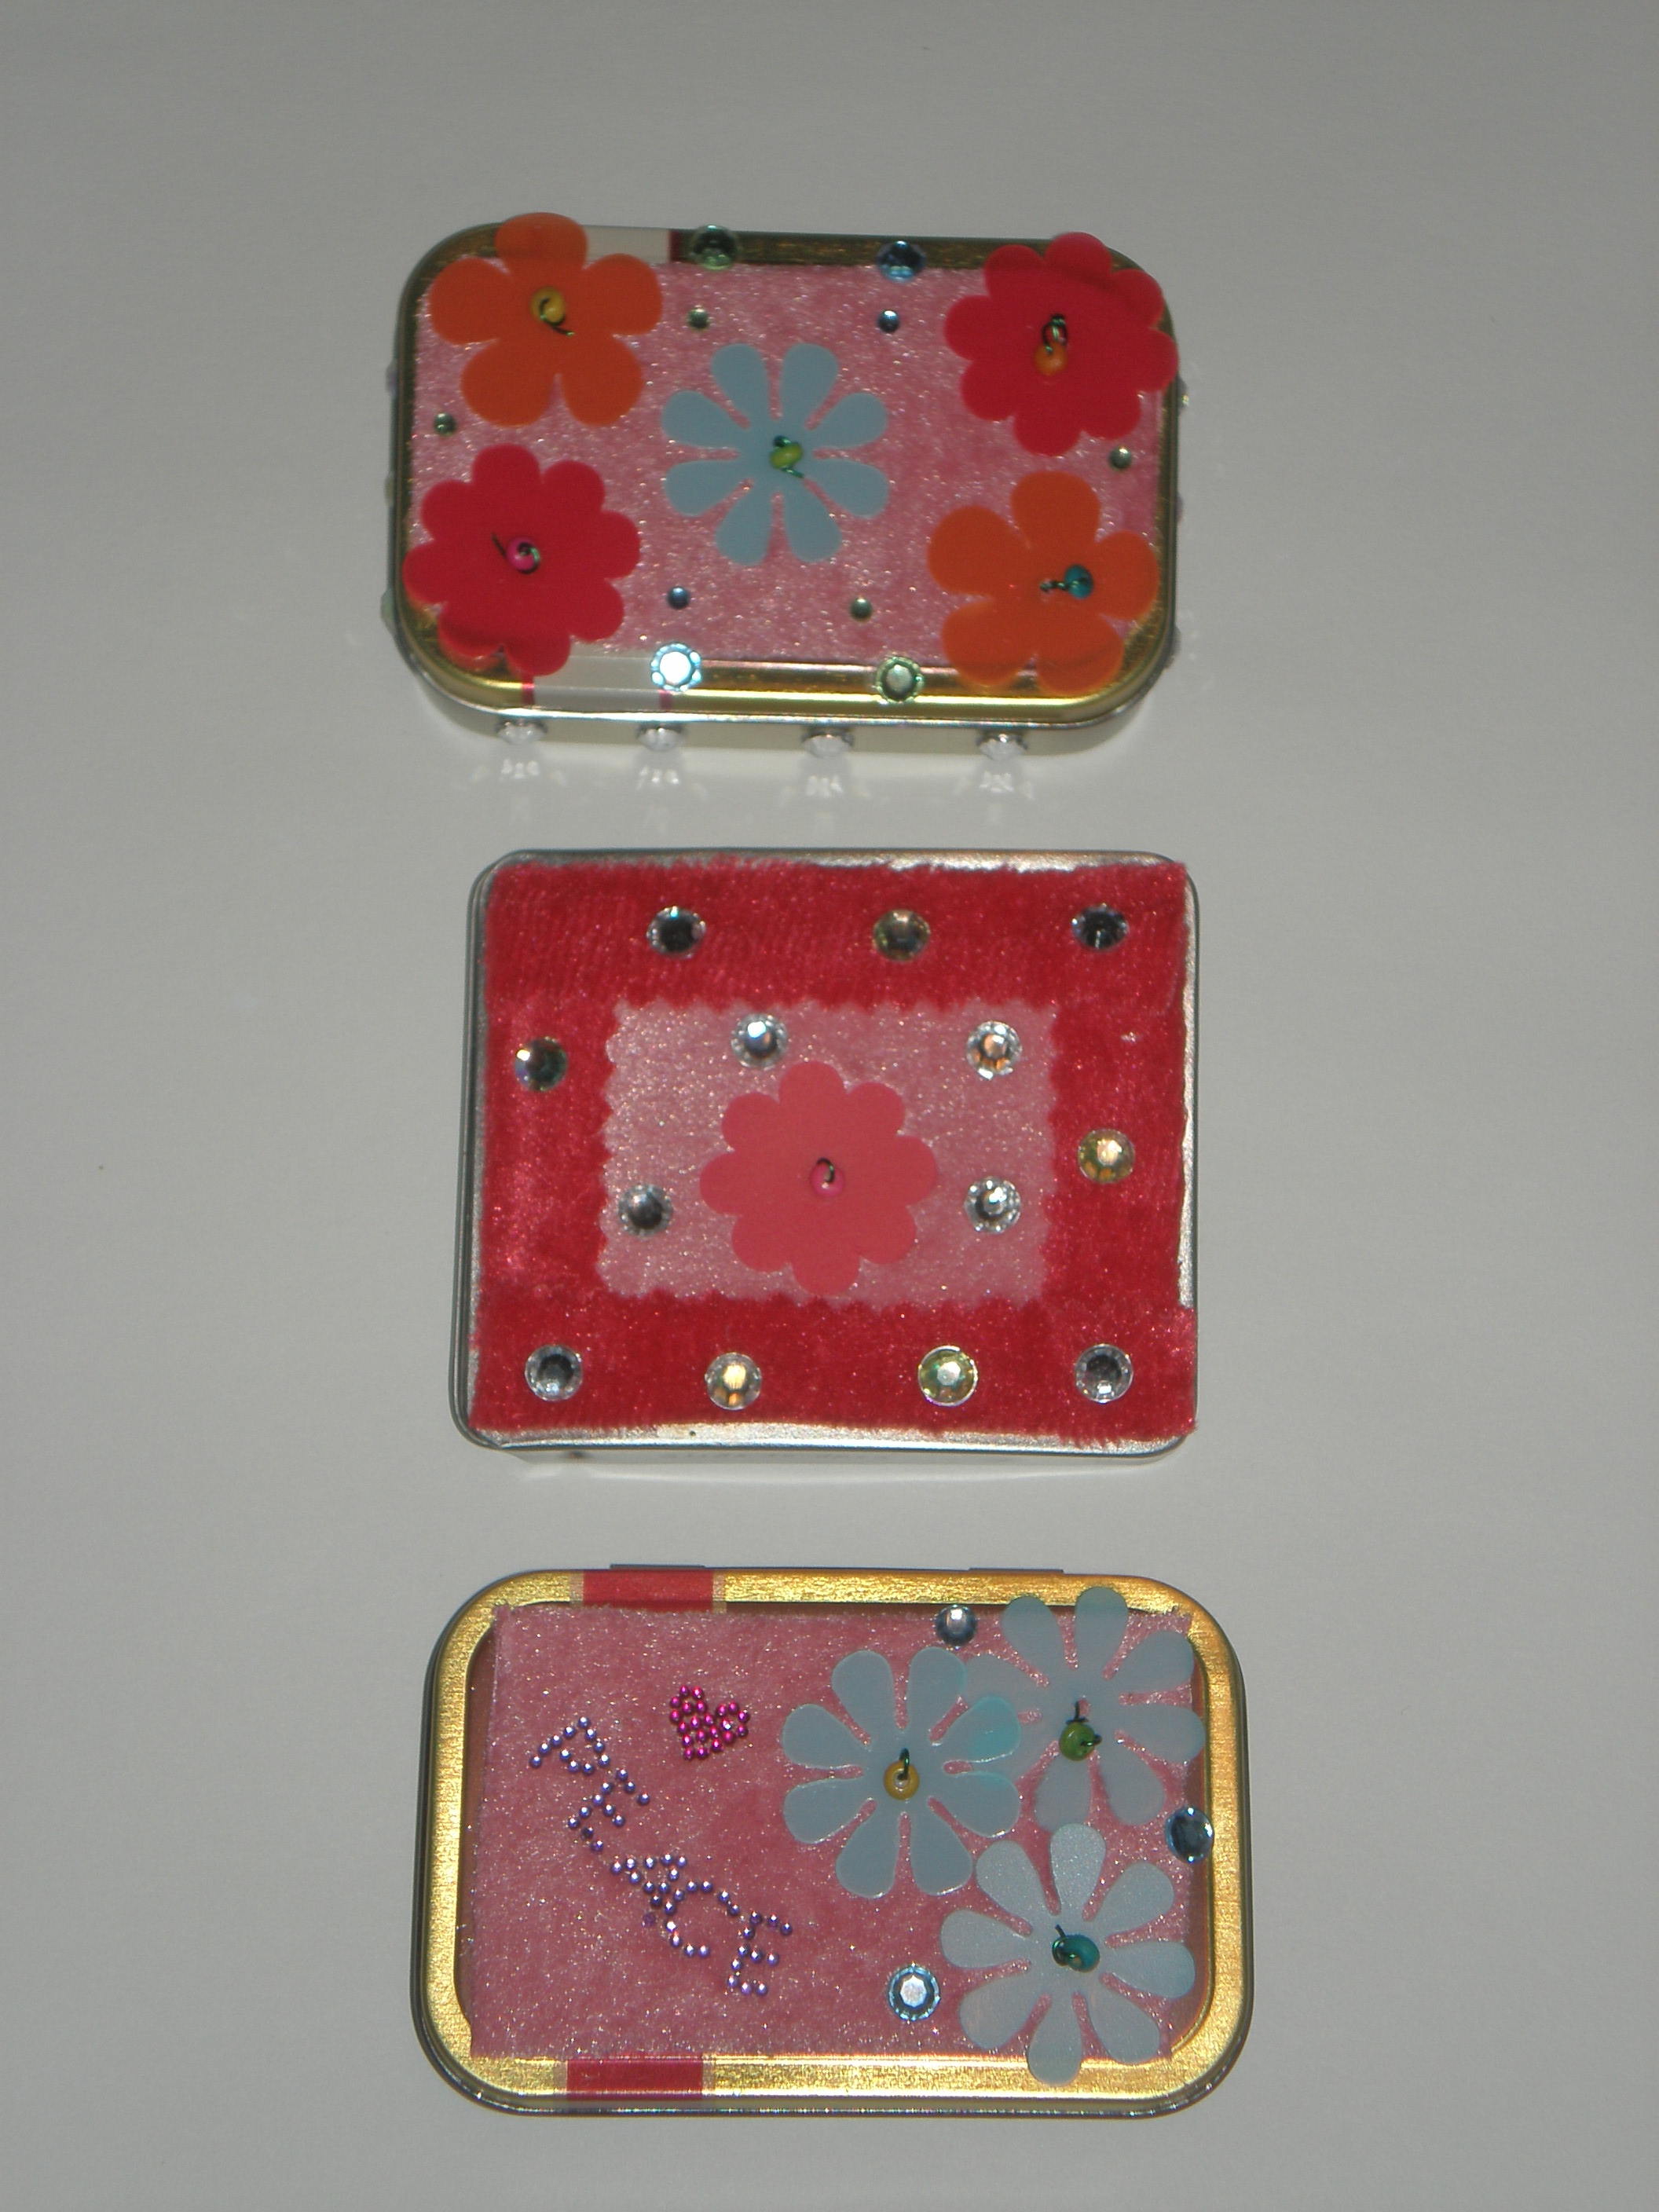 altoid and hint mint boxes